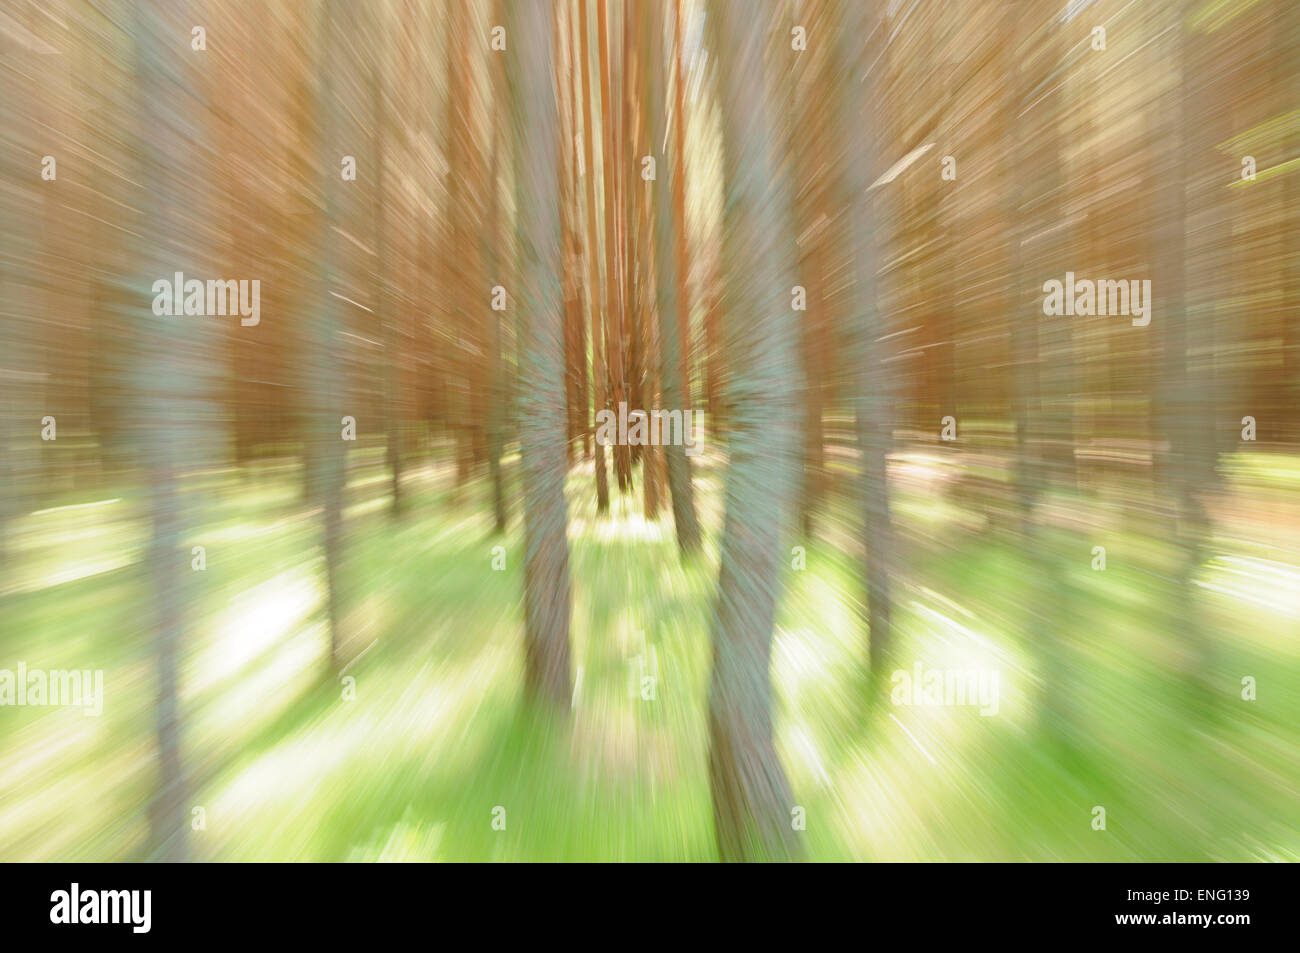 Movement concept: abstract photo of trees - Stock Image